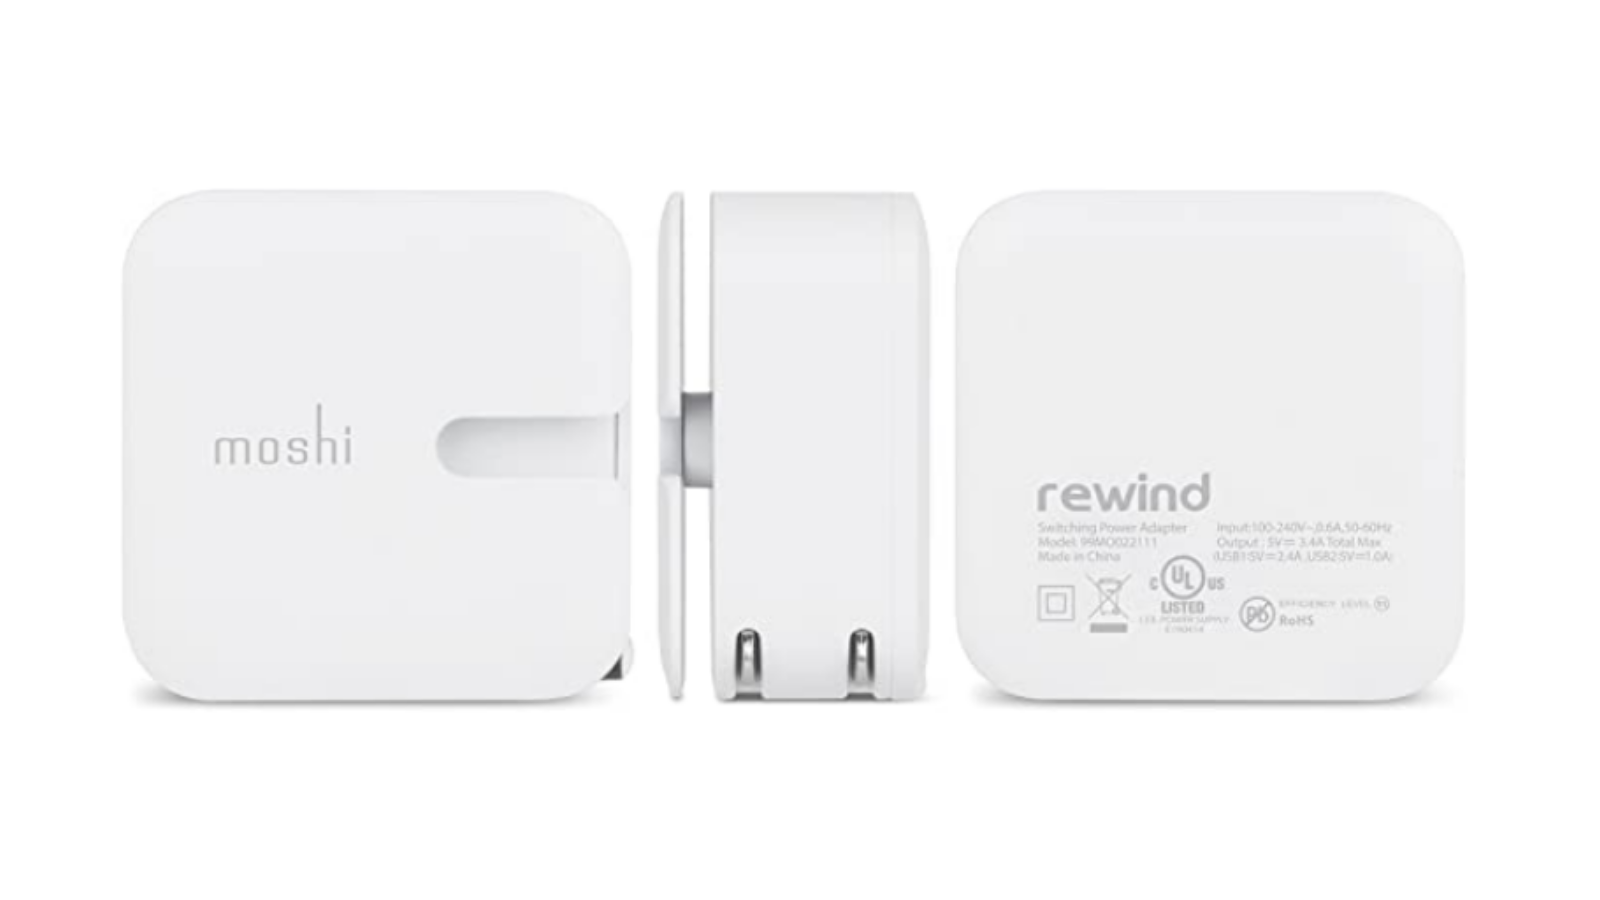 3 different angles of the Moshi Rewind Dual 2 charger